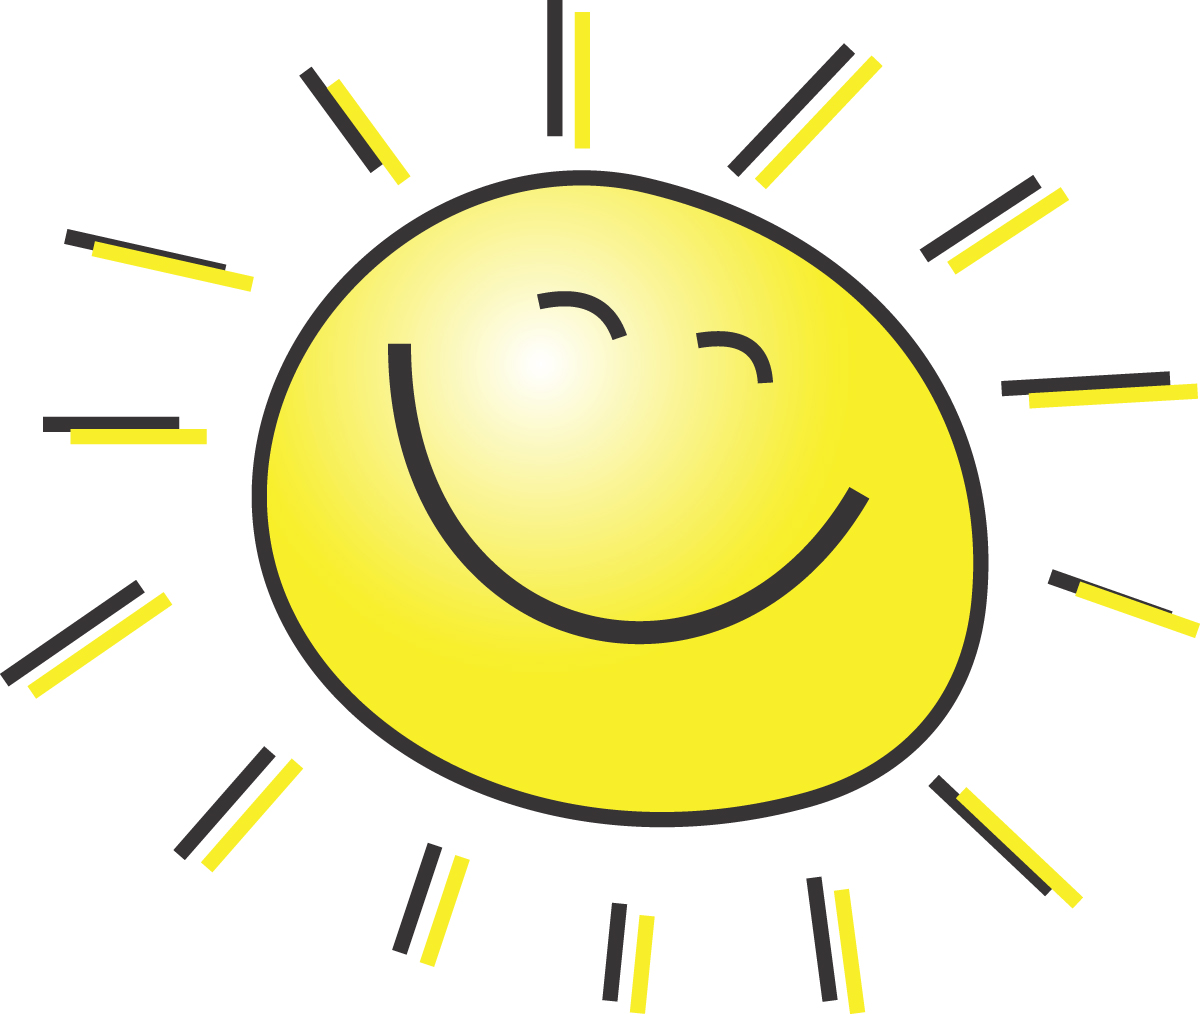 Summer pictures clip art clip freeuse stock Summer Clipart Illustration Of A Happy Smiling Sun clip freeuse stock